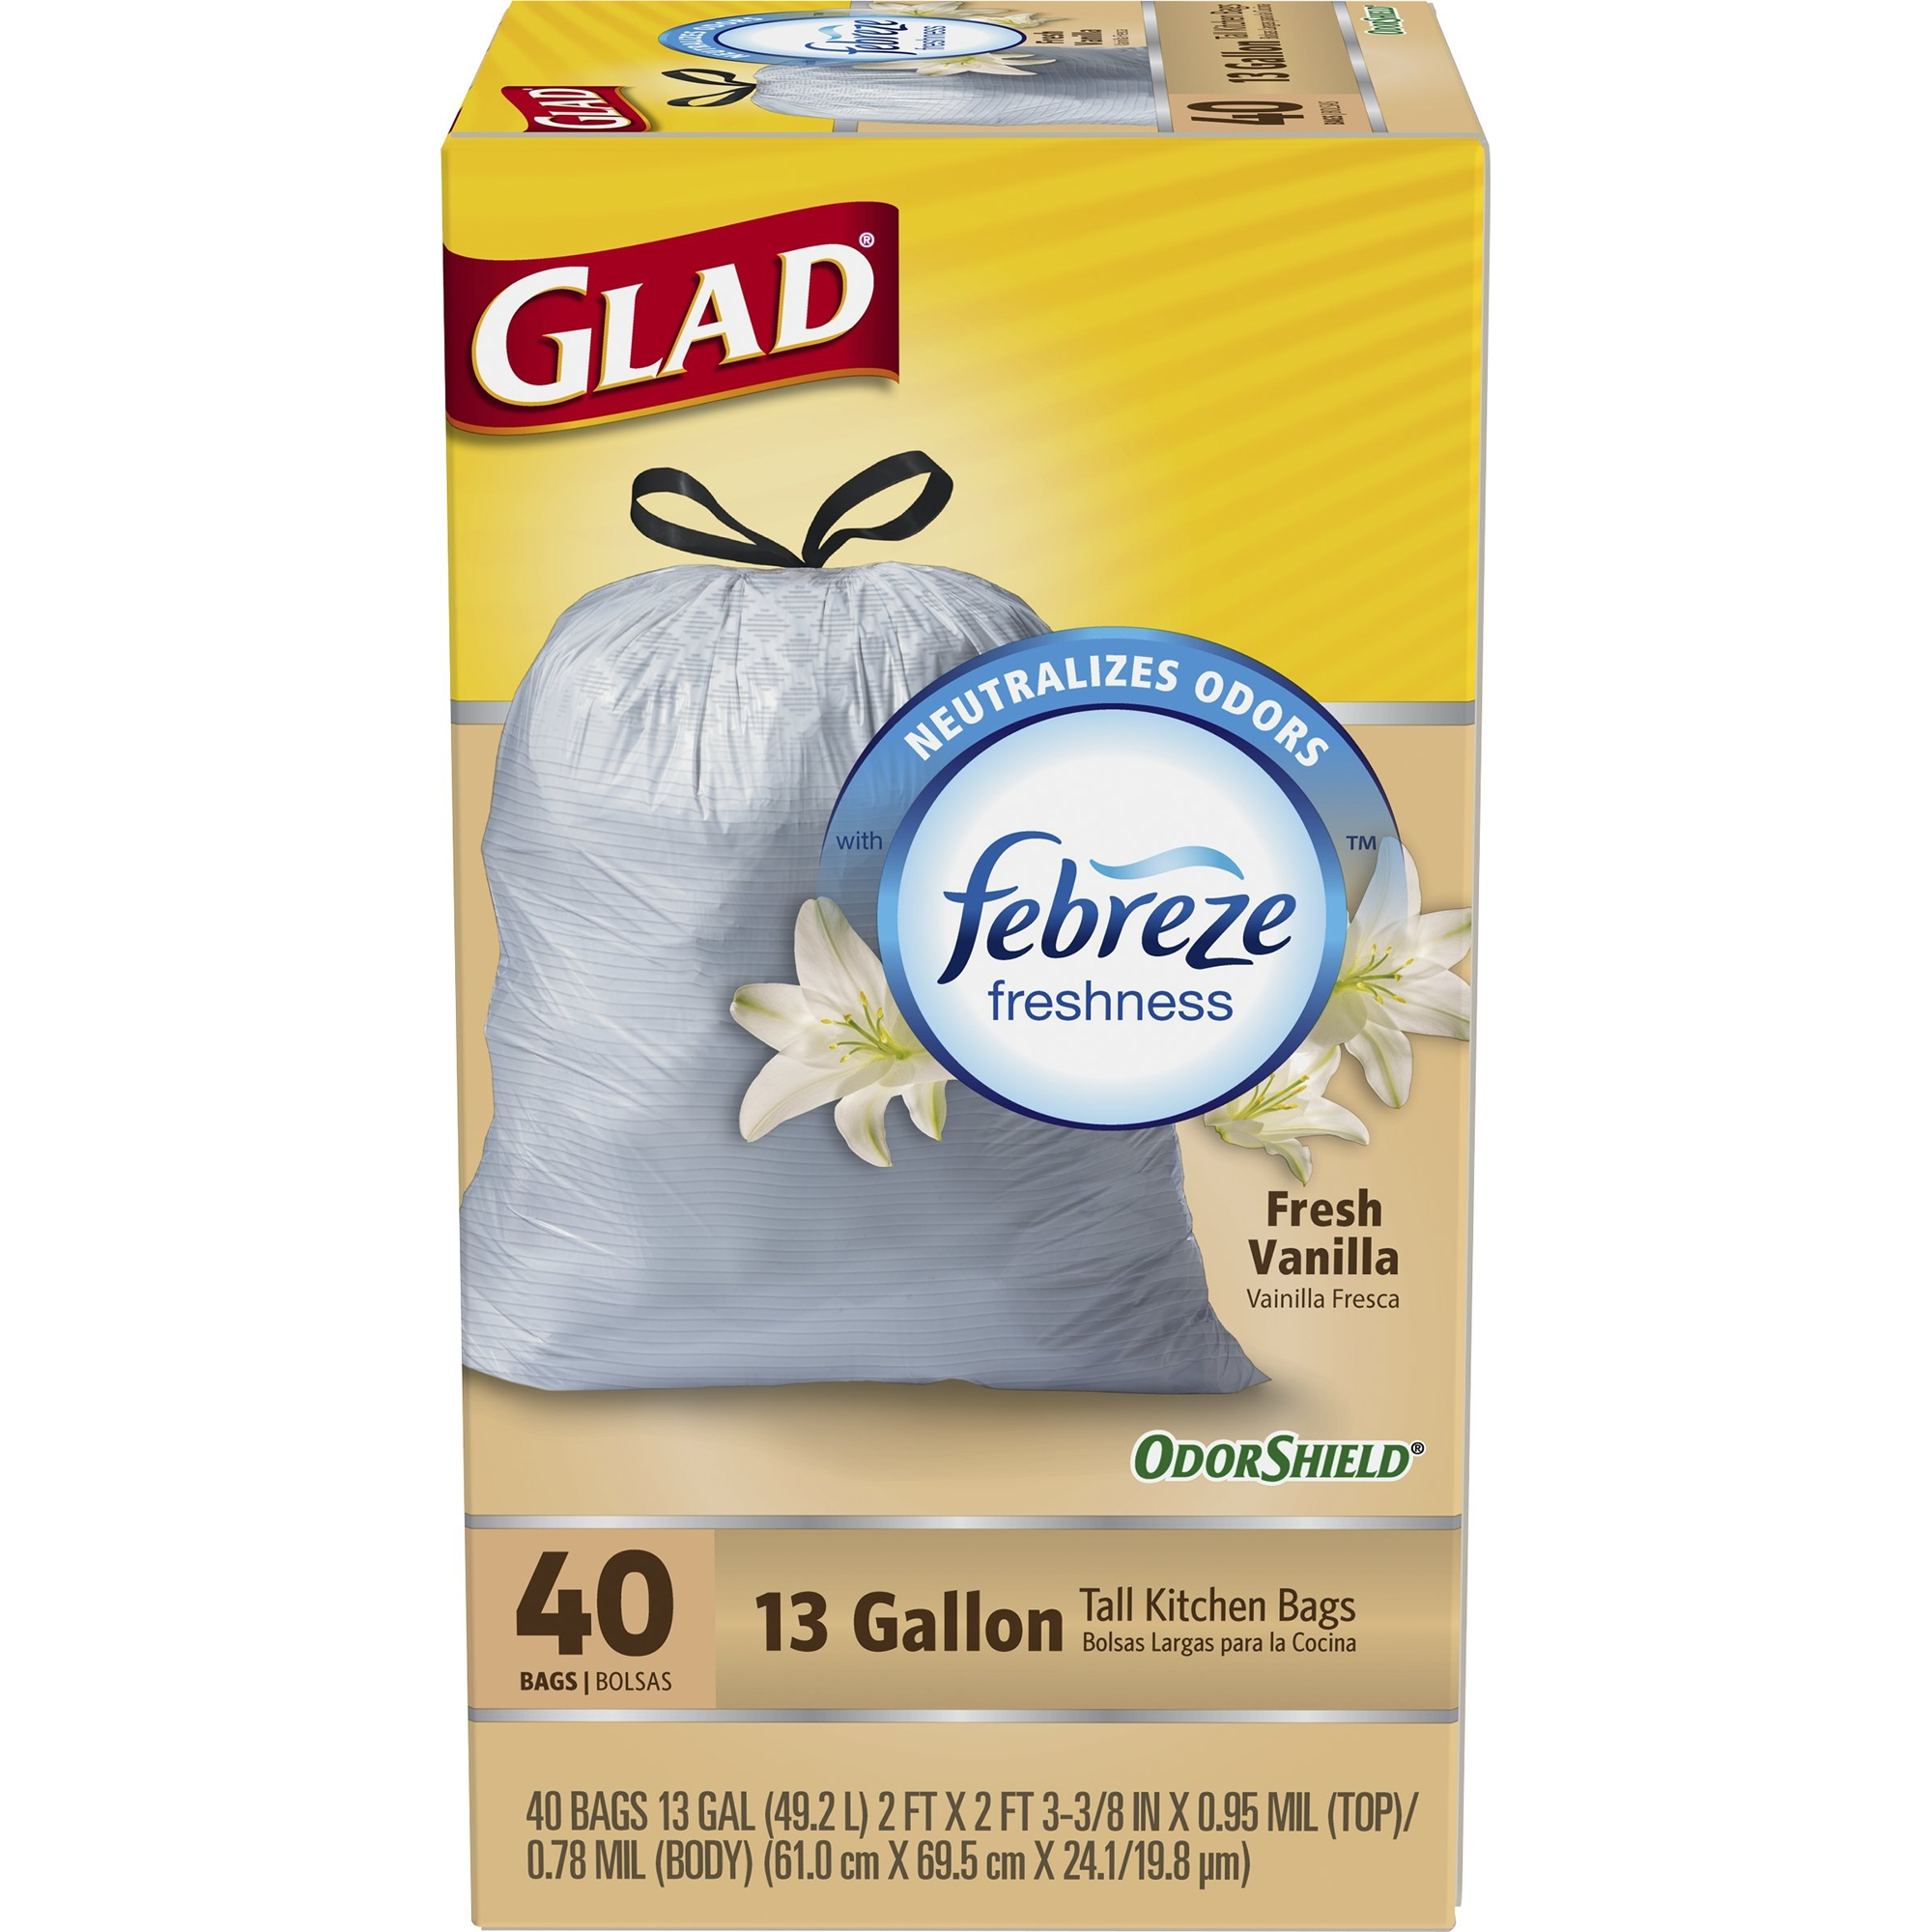 Glad OdorShield Tall Kitchen Drawstring Trash Bags, Vanilla, 13 Gallon, 40 Count